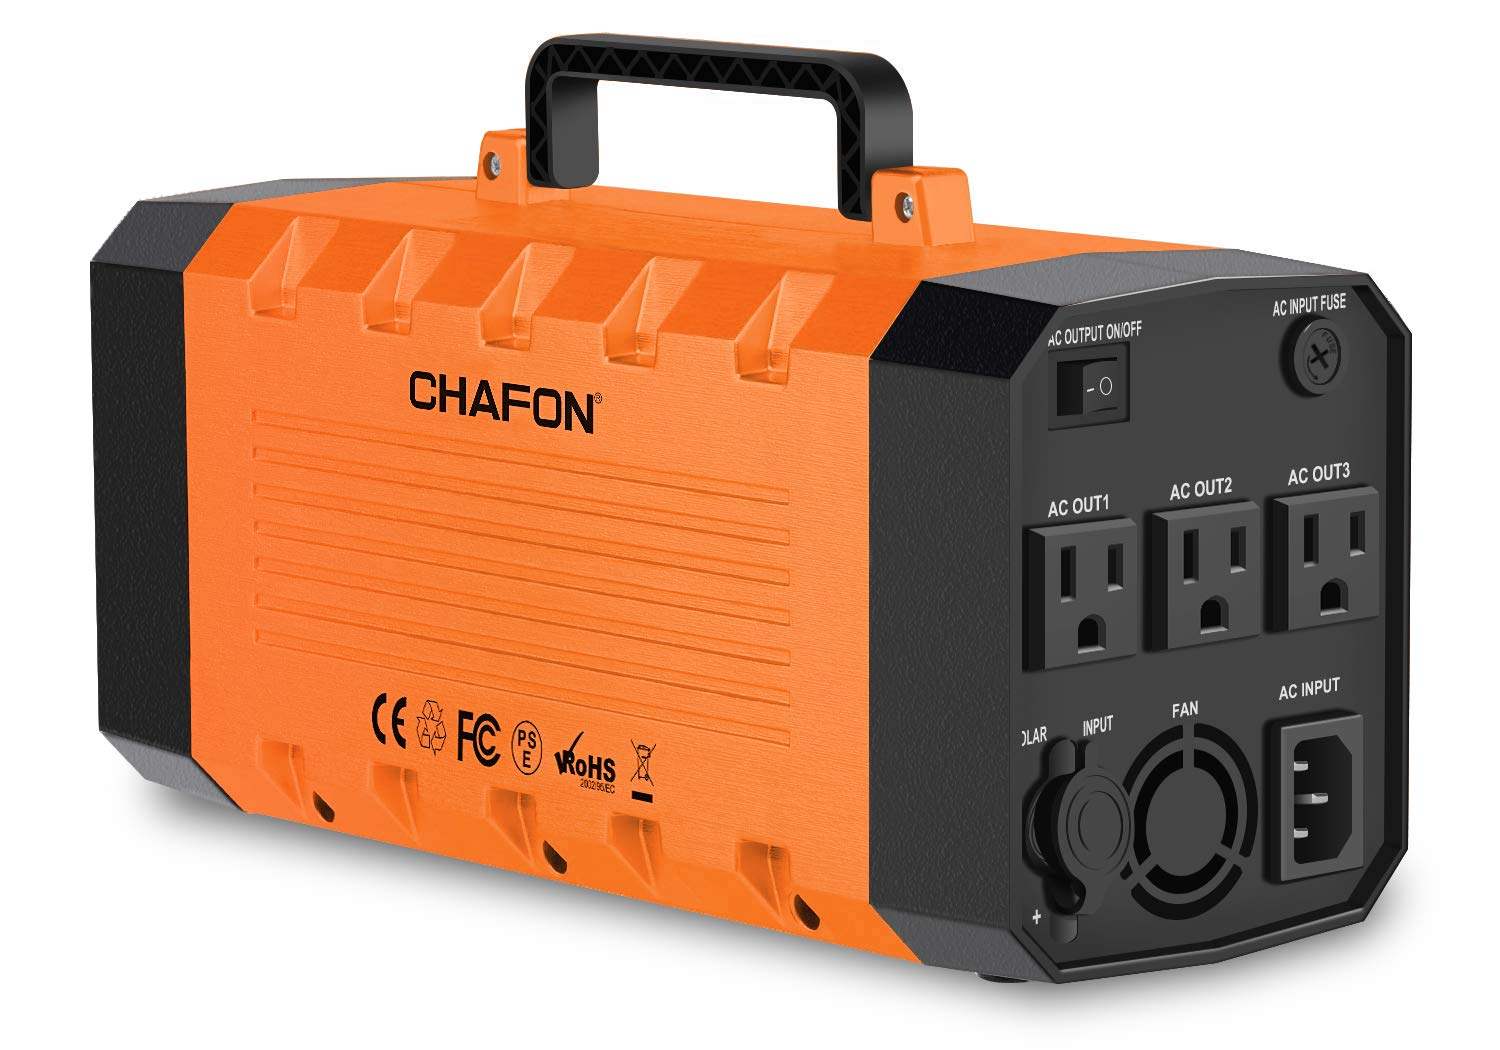 CHAFON 288WH Portable Generator UPS Battery Backup,Rechargeable Power Source Inverter with 110V/500W AC,12V Car,USB Ports for Camping -Orange